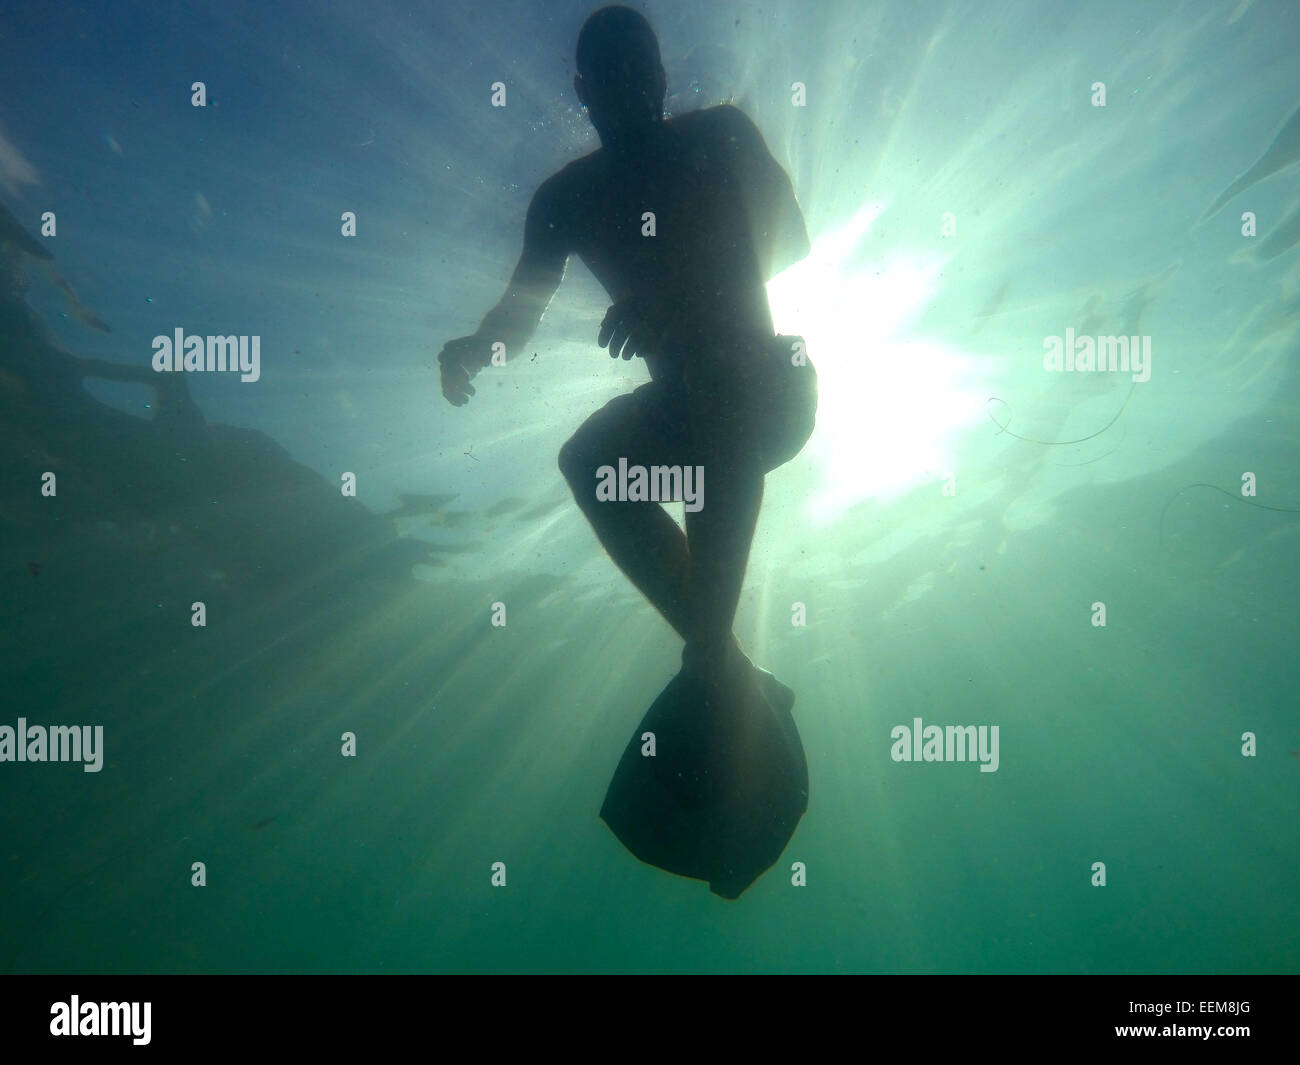 Swimming in ocean - Stock Image